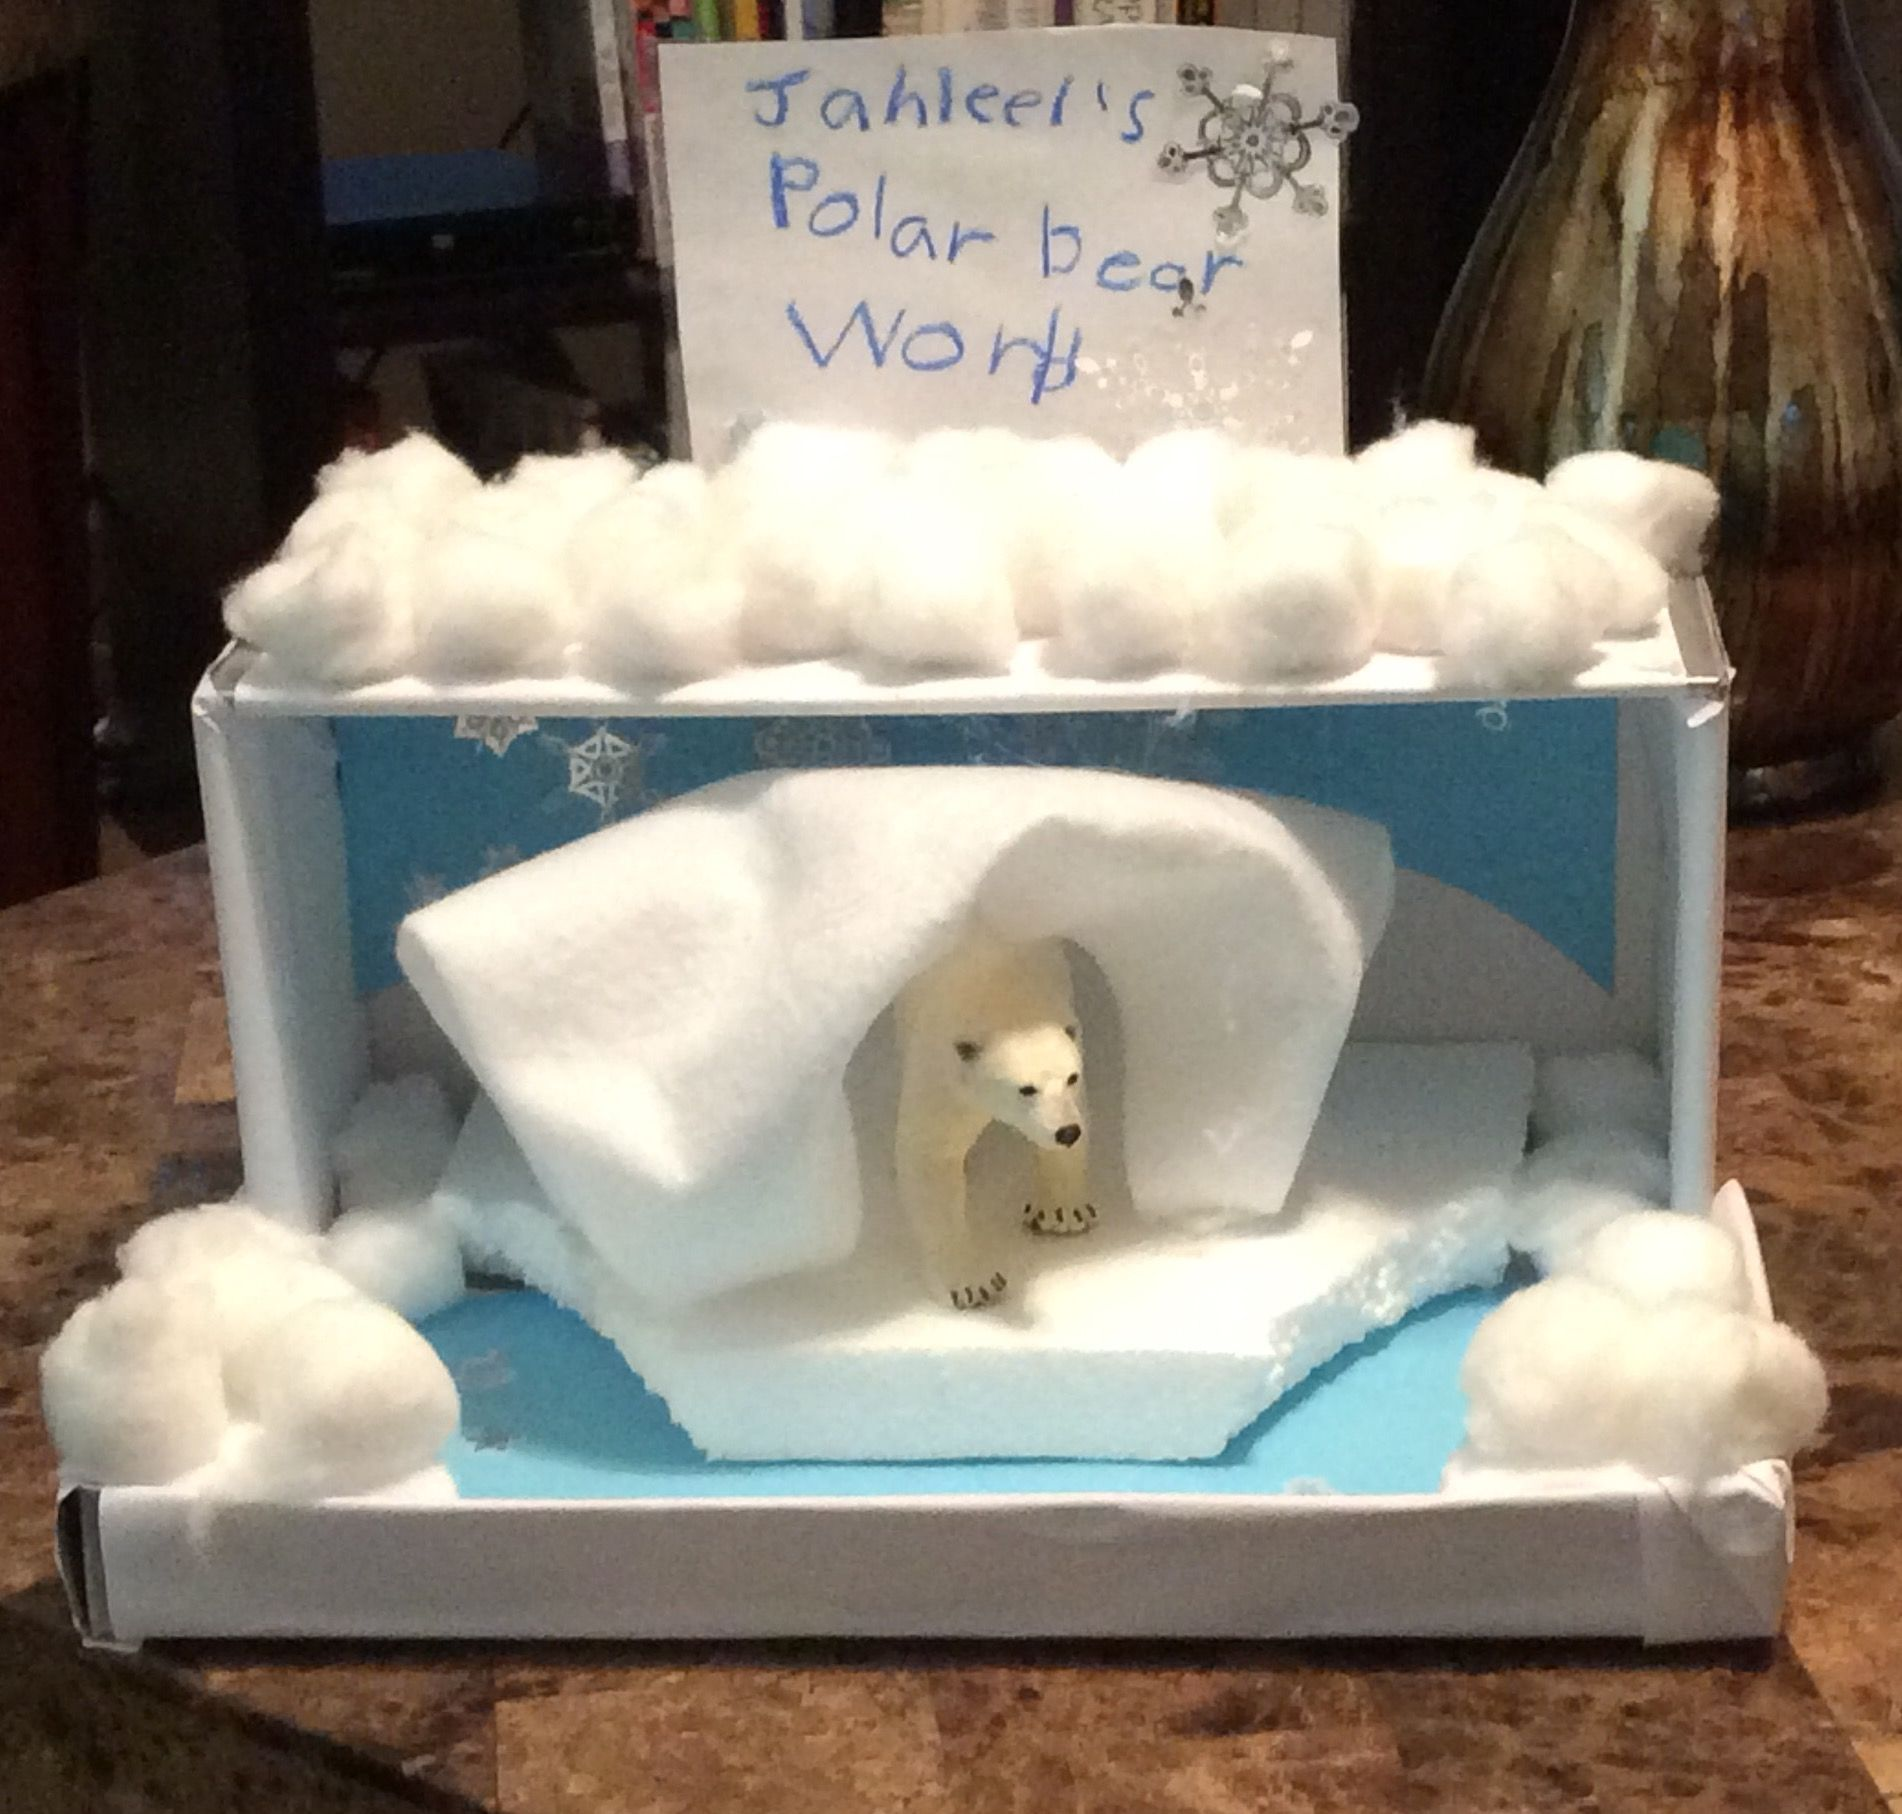 Jahleel S Polar Bear World Diorama Of A Mammal For His